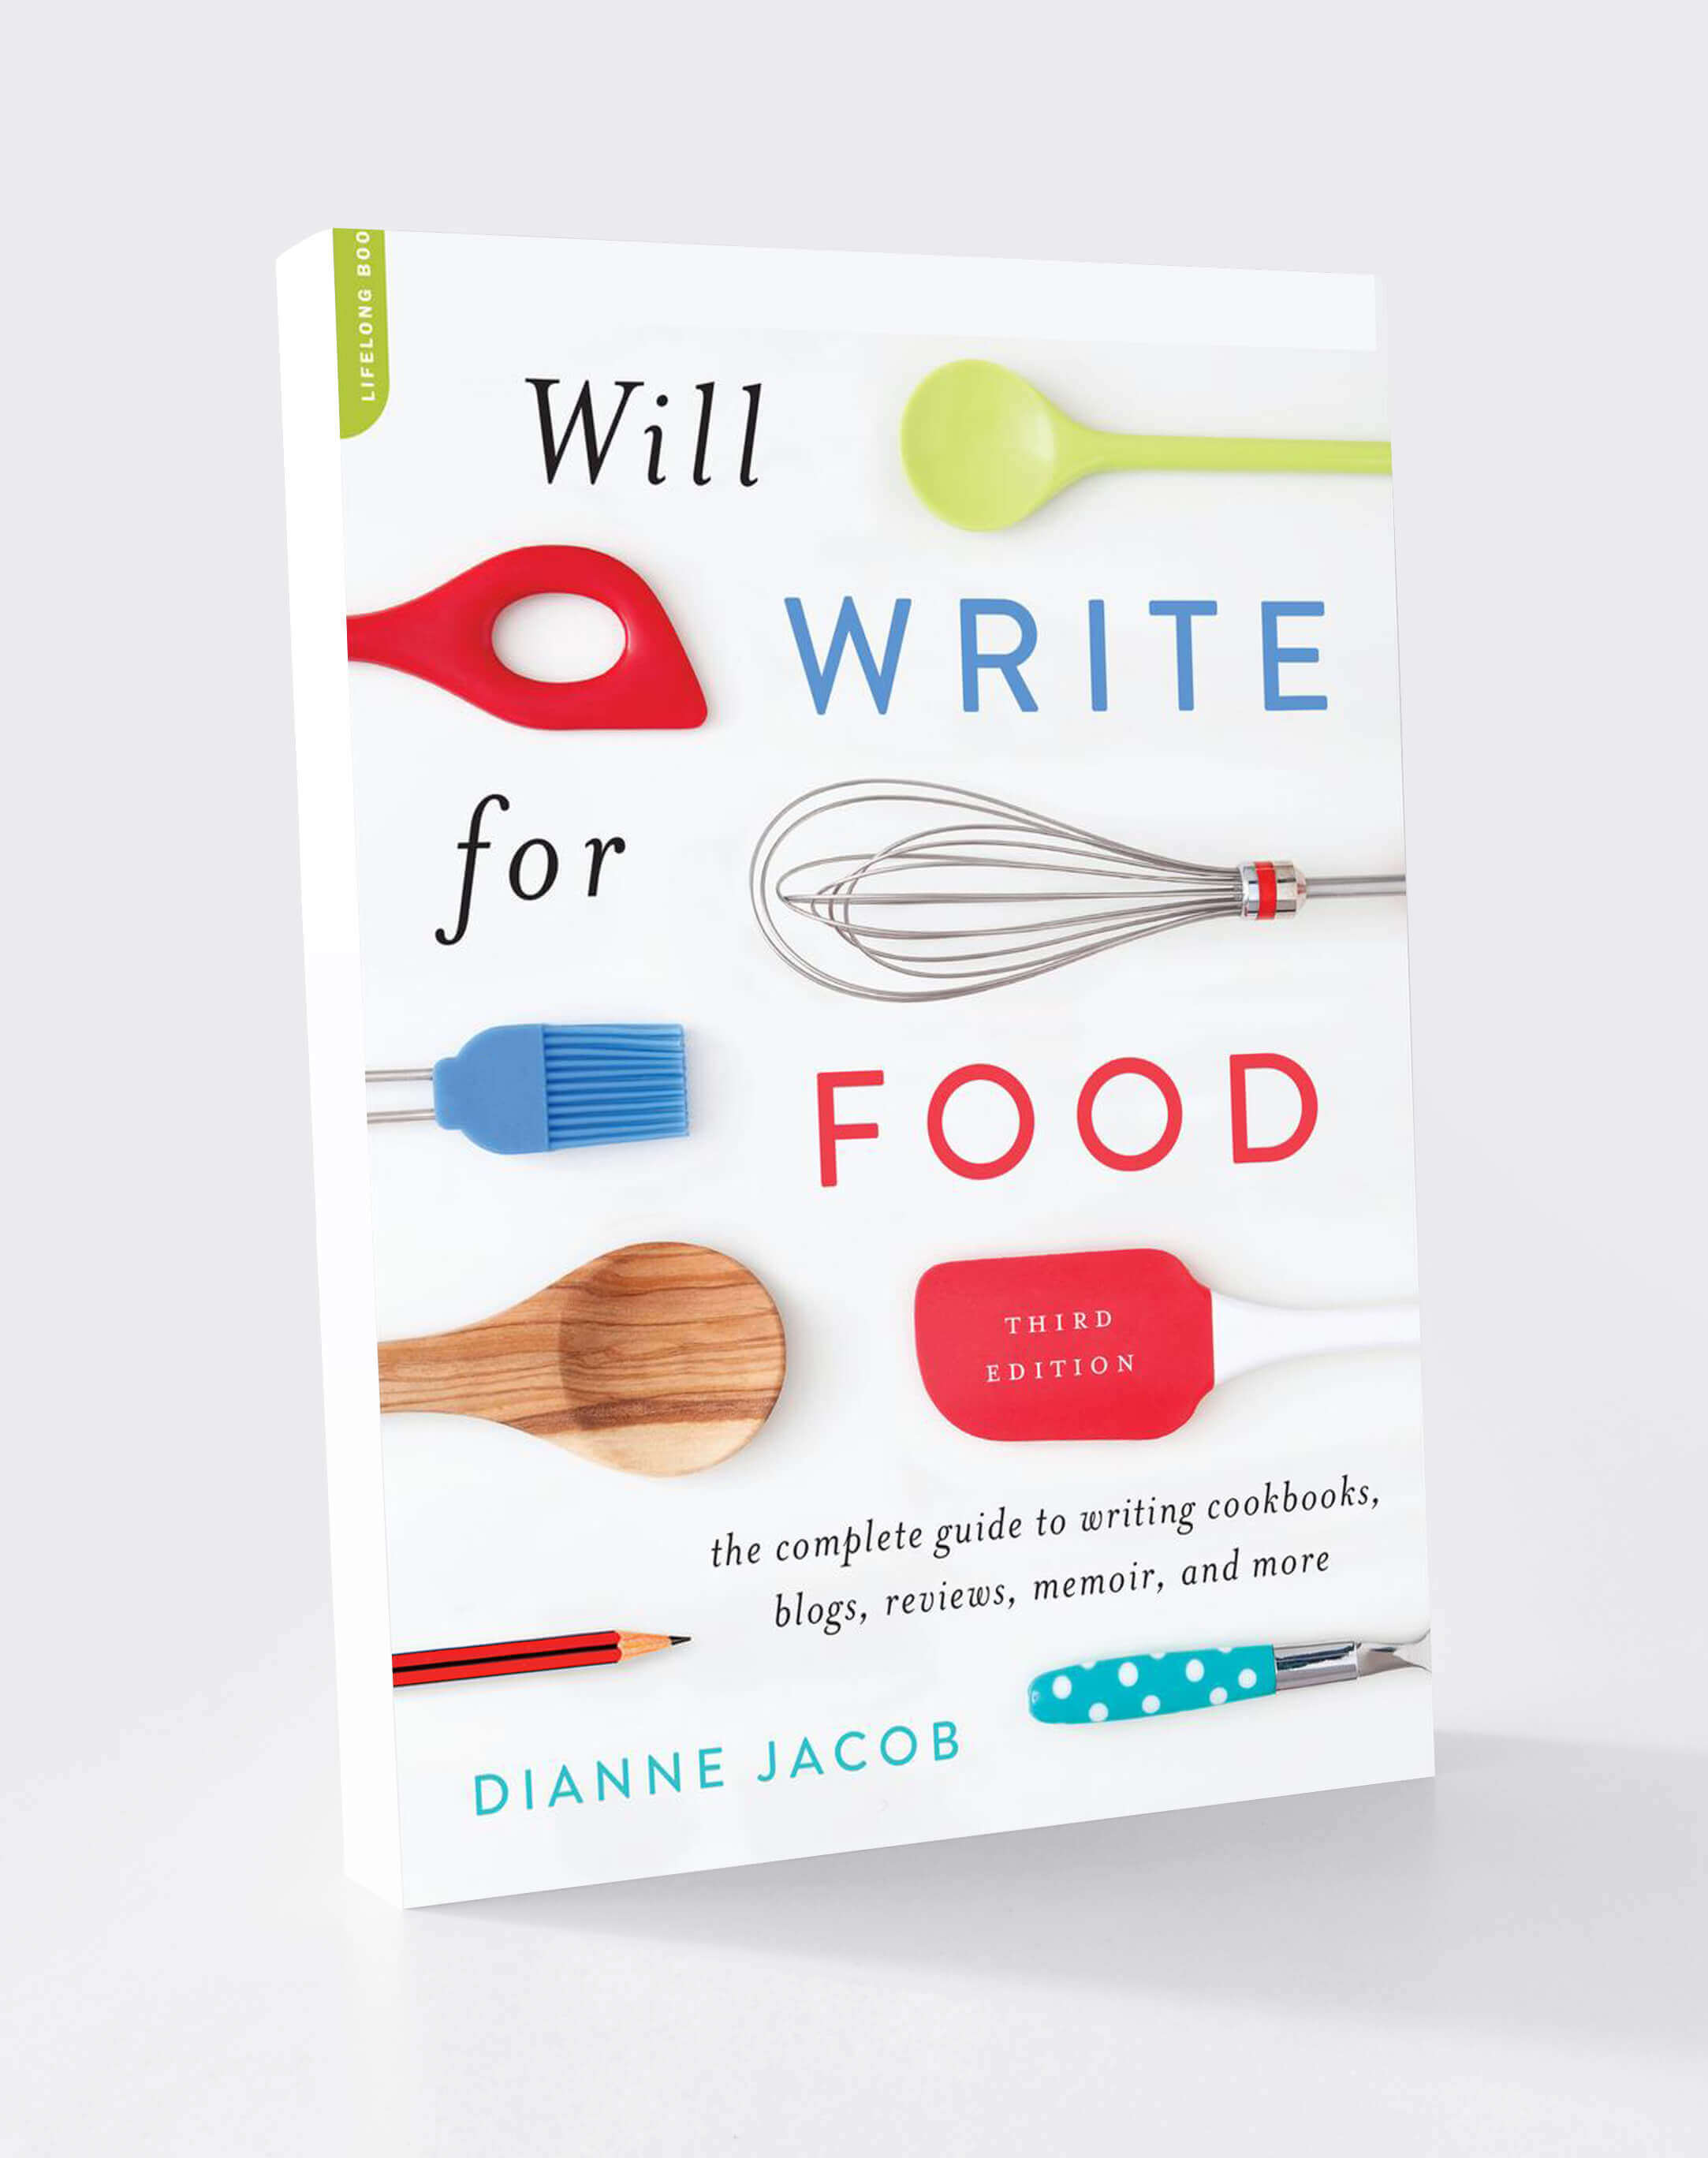 Will Write for Food The Complete Guide to Writing Cookbooks, Blogs, Memoir, Recipes, and More